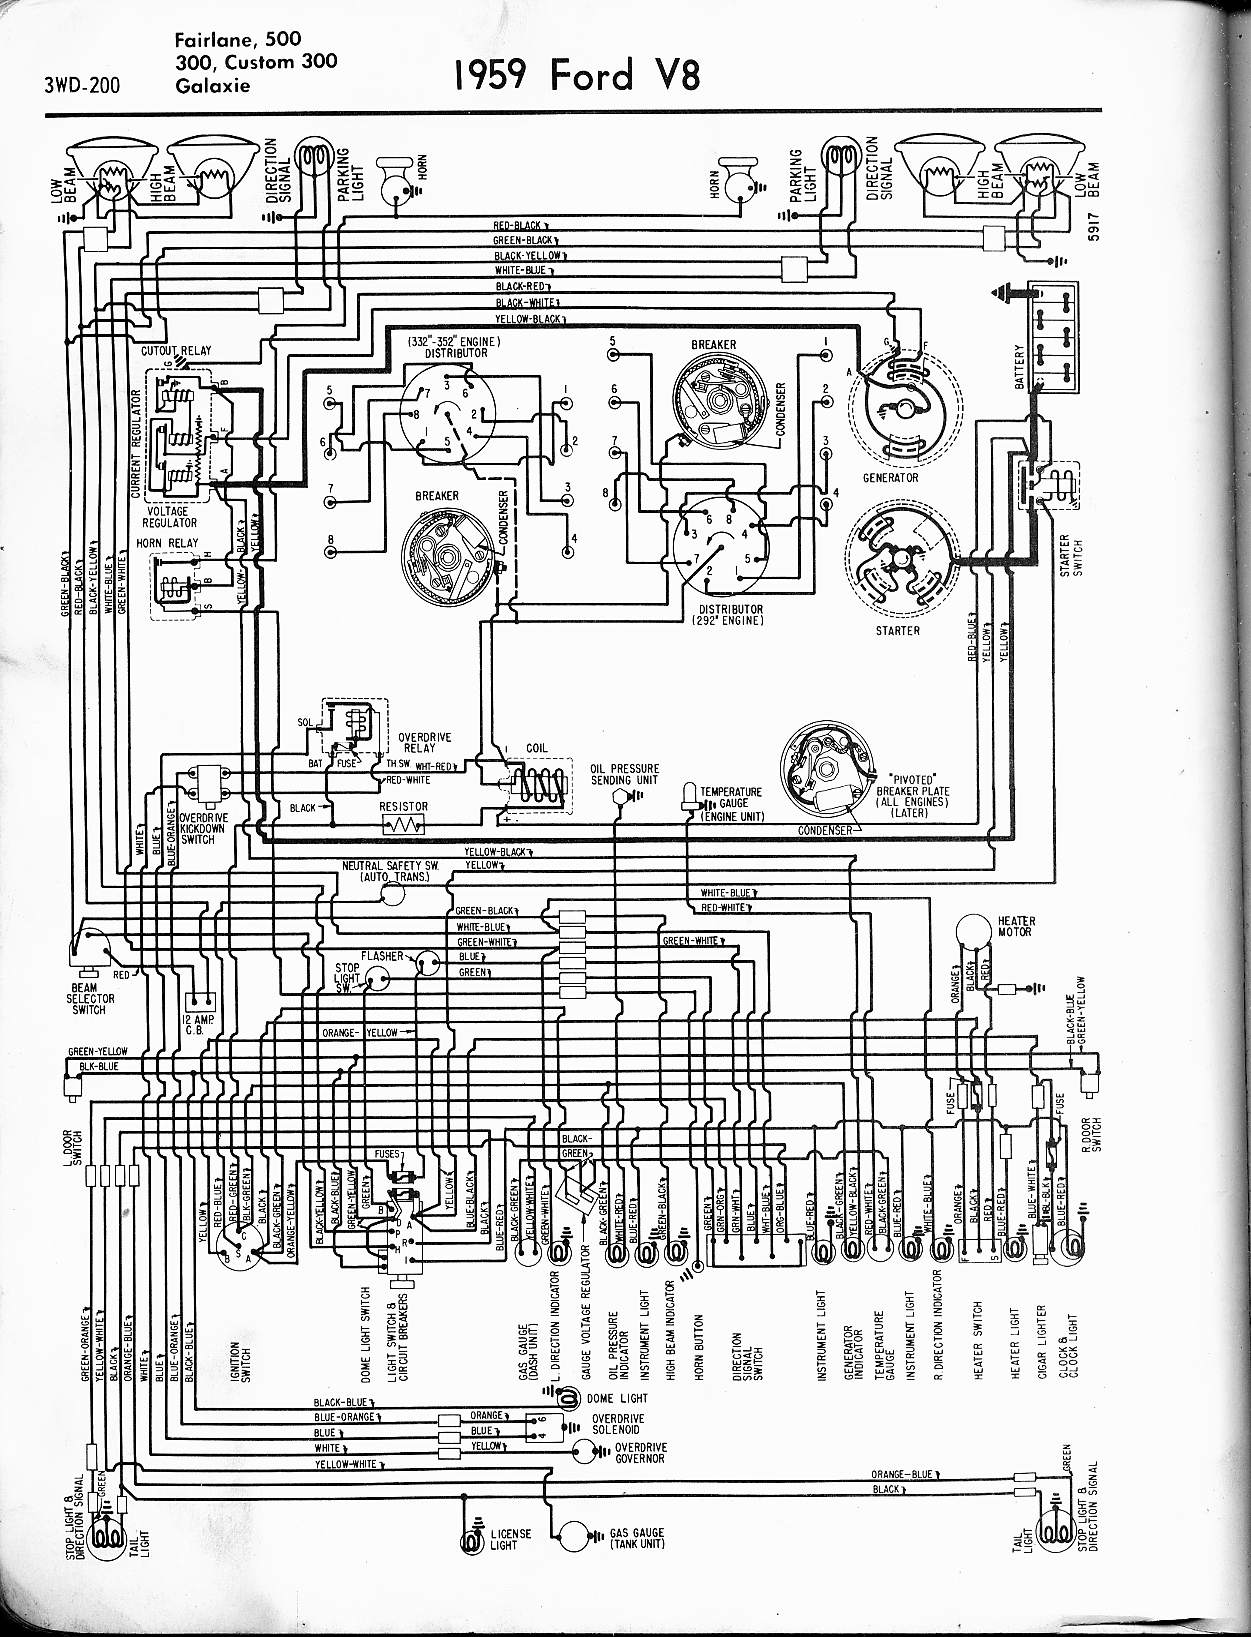 MWire5765 200 57 65 ford wiring diagrams ford wiring schematics at bayanpartner.co